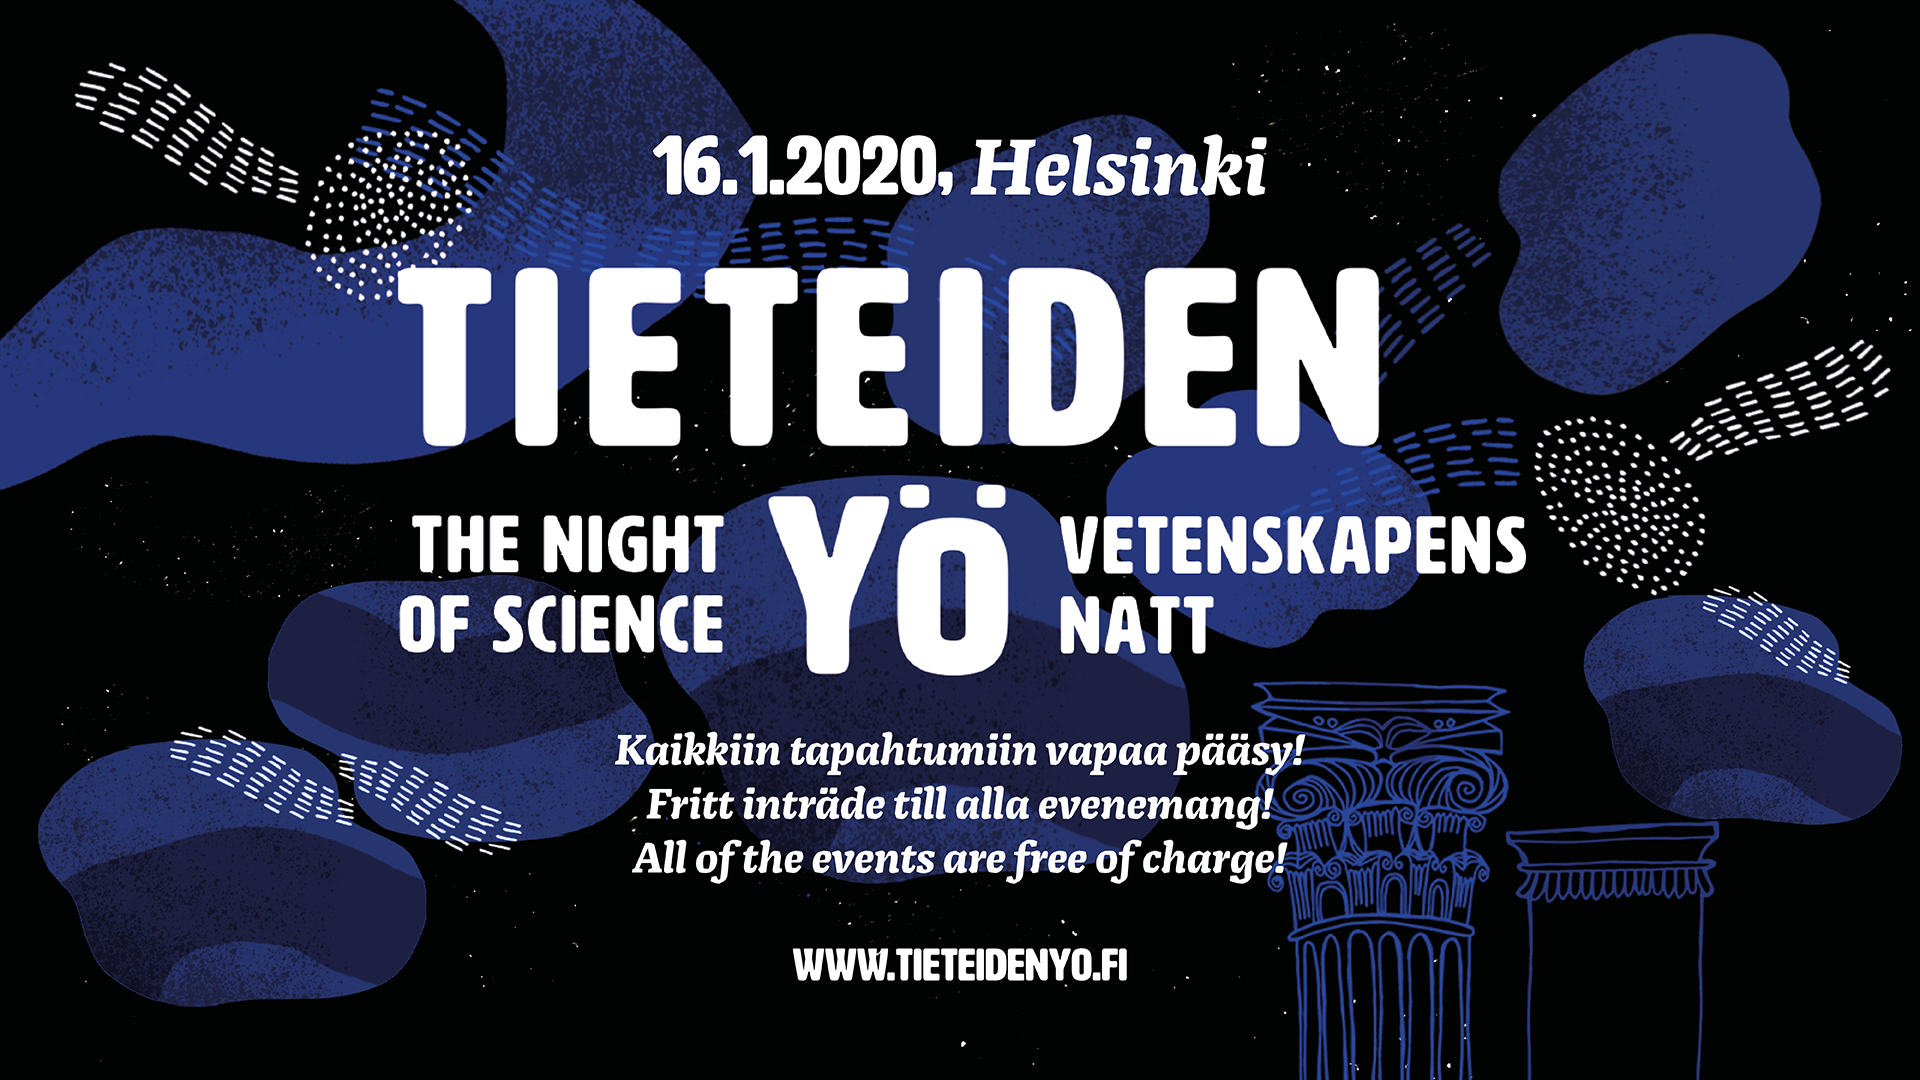 16.1.2020 Helsinki, Tieteiden yö - The Night of Science - Vetenskapens natt.